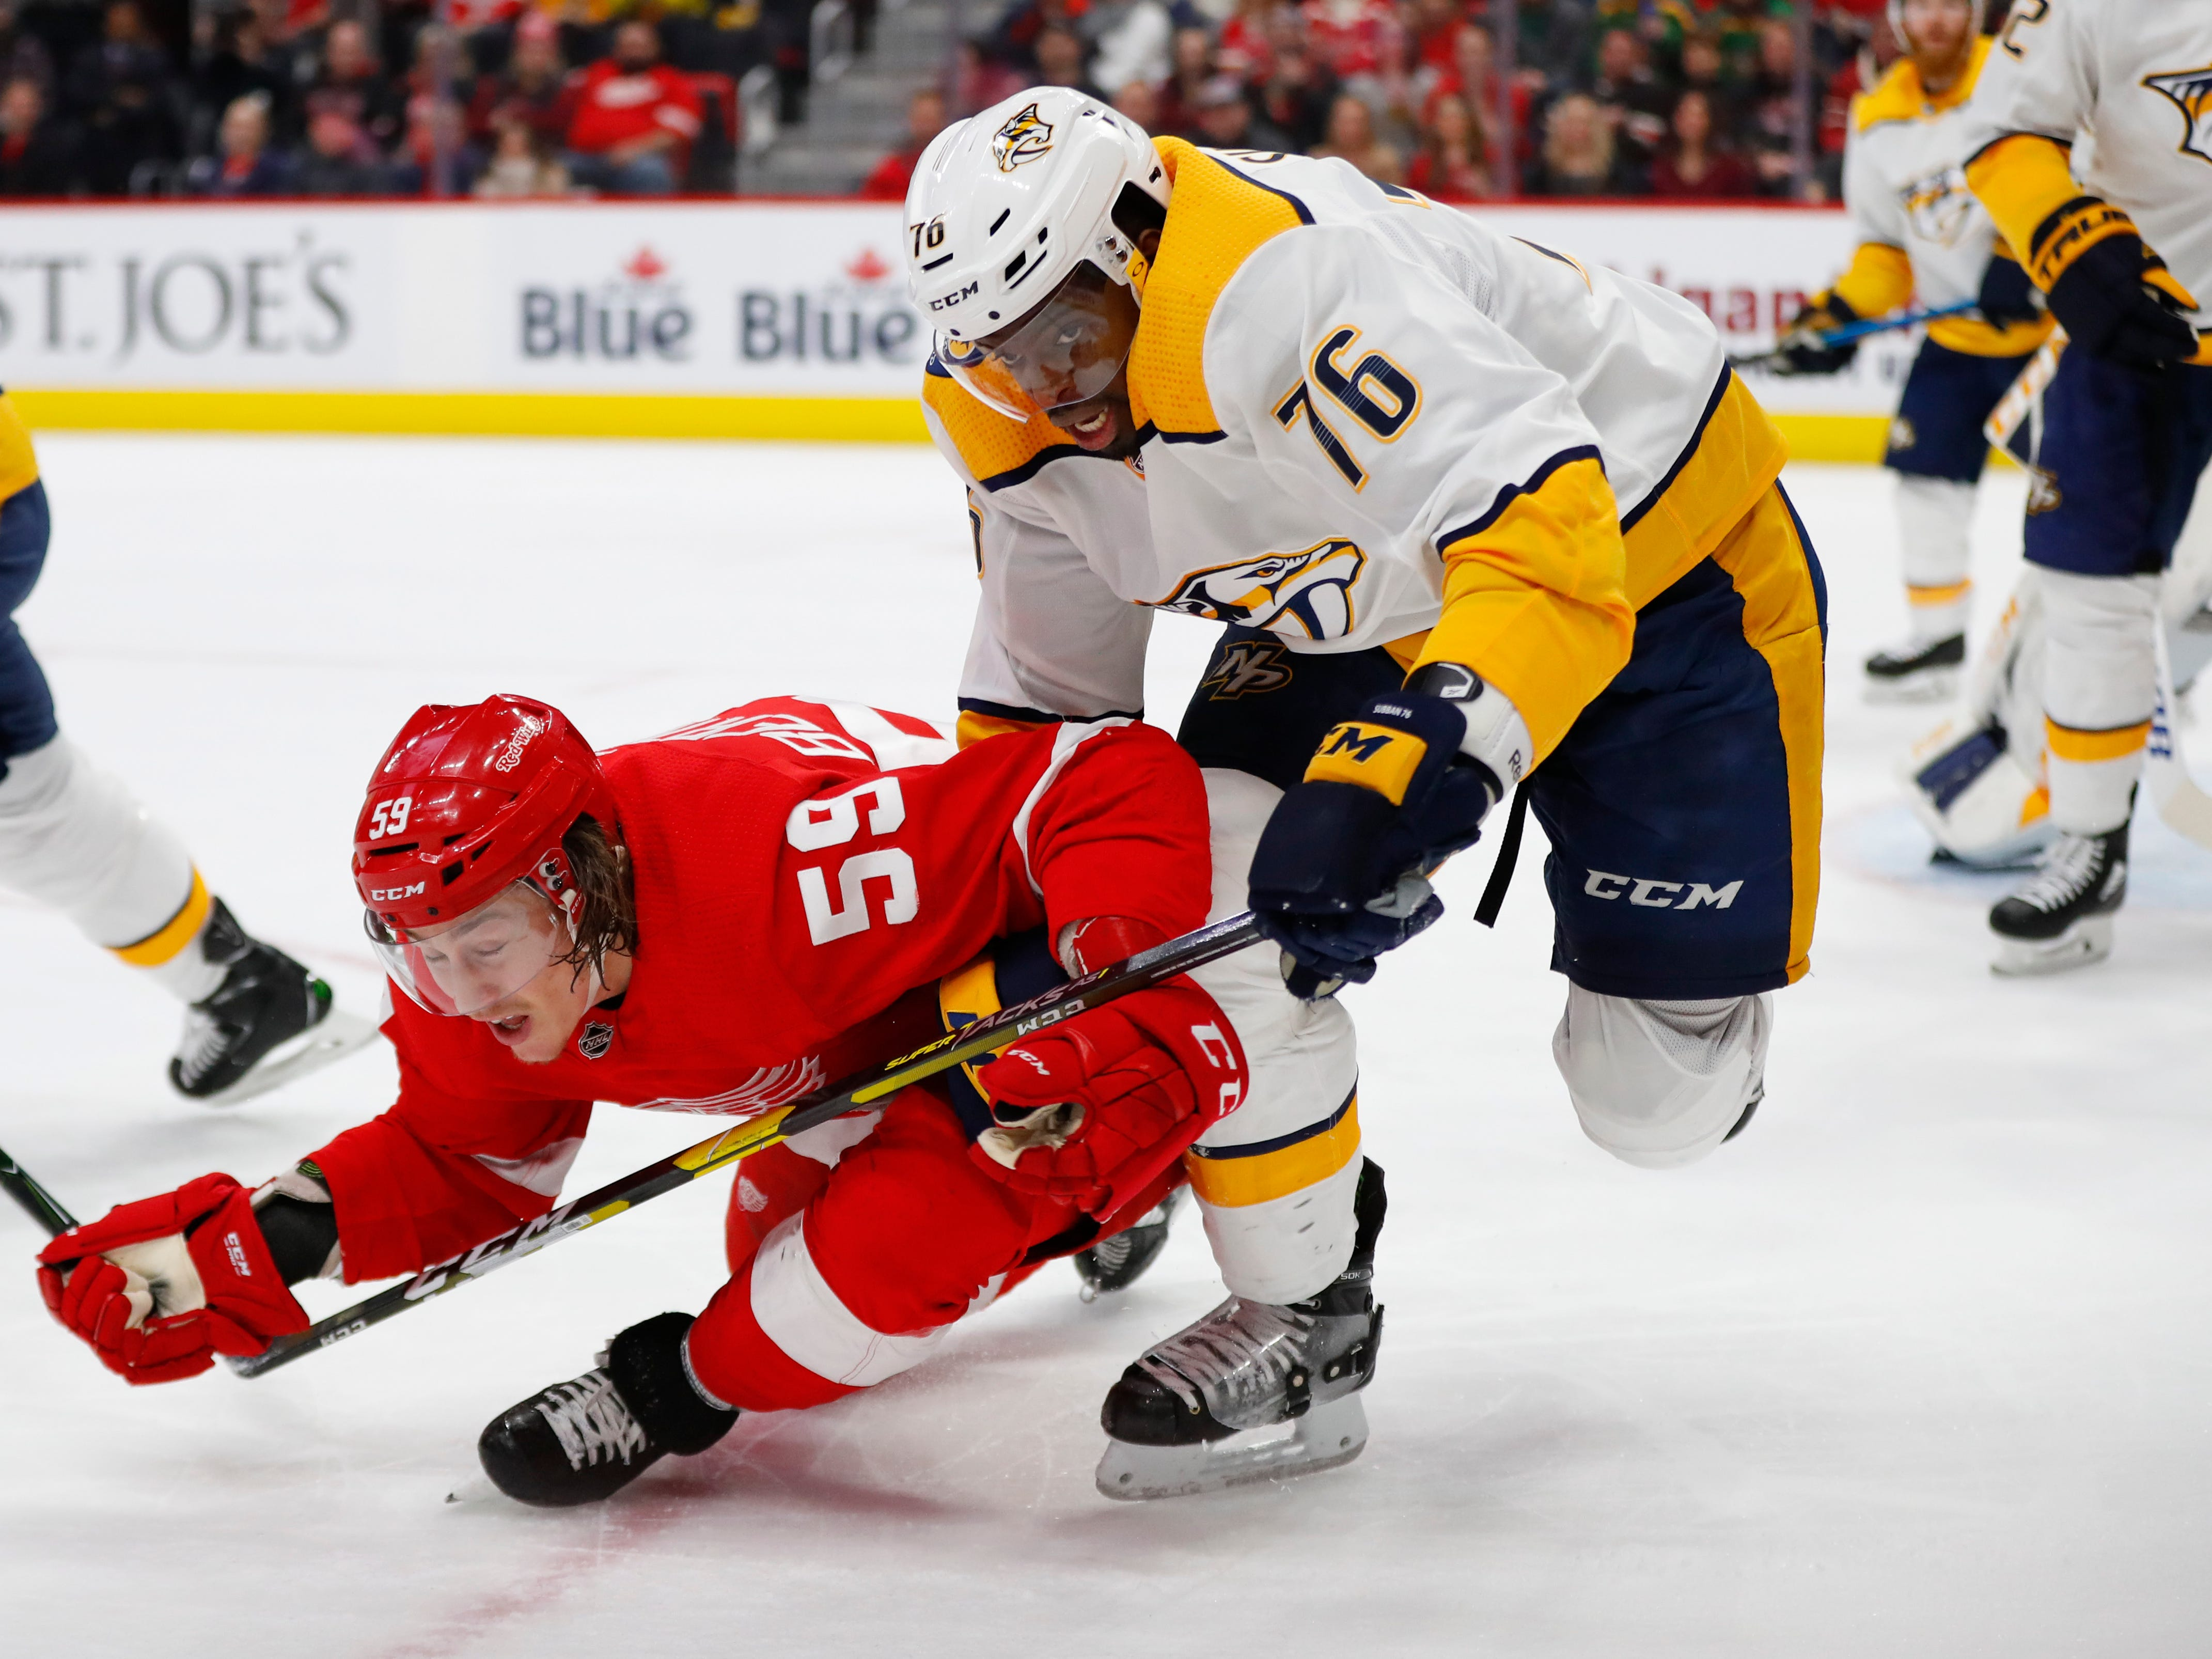 Nashville Predators defenseman P.K. Subban (76) takes down Detroit Red Wings left wing Tyler Bertuzzi (59) while chasing the puck in the first period.